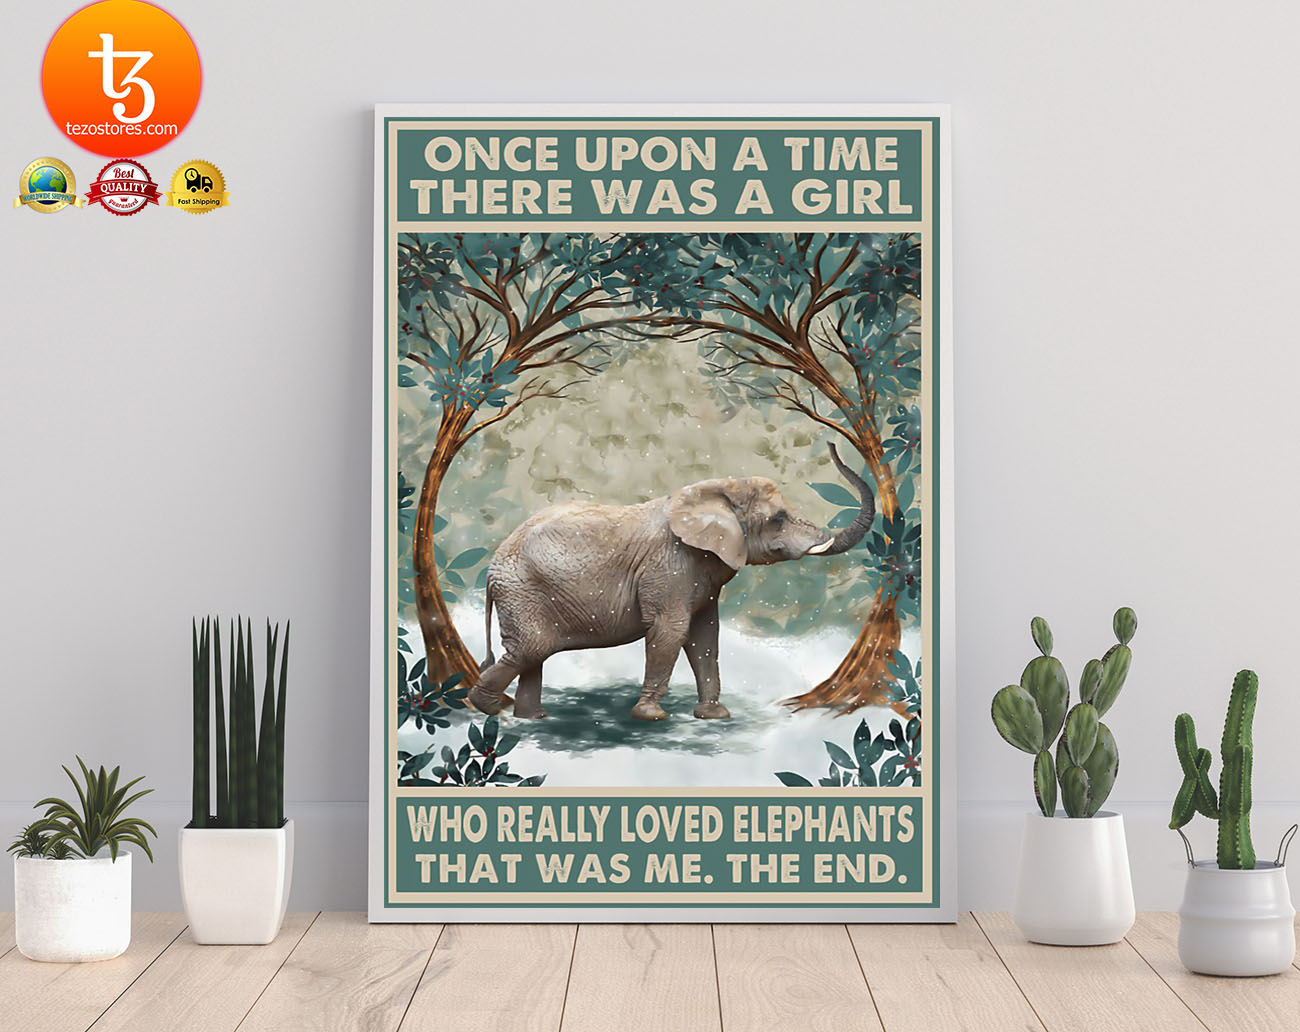 Once upon a time there was a girl who really loved elephants poster